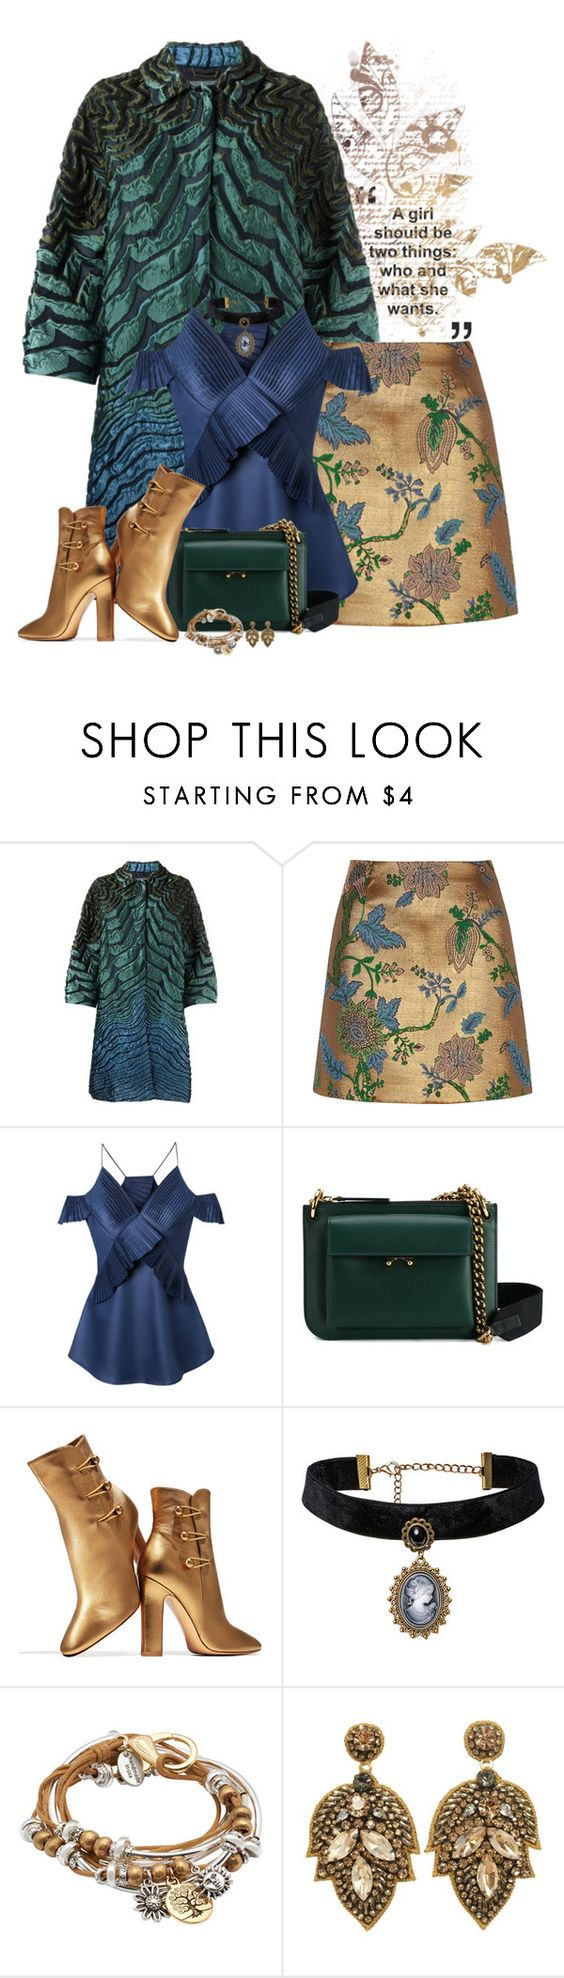 """Untitled #1172"" by montse-gallardo ❤ liked on Polyvore featuring Alberta Ferretti, River Island, Marni, Gianvito Rossi and Lizzy James"